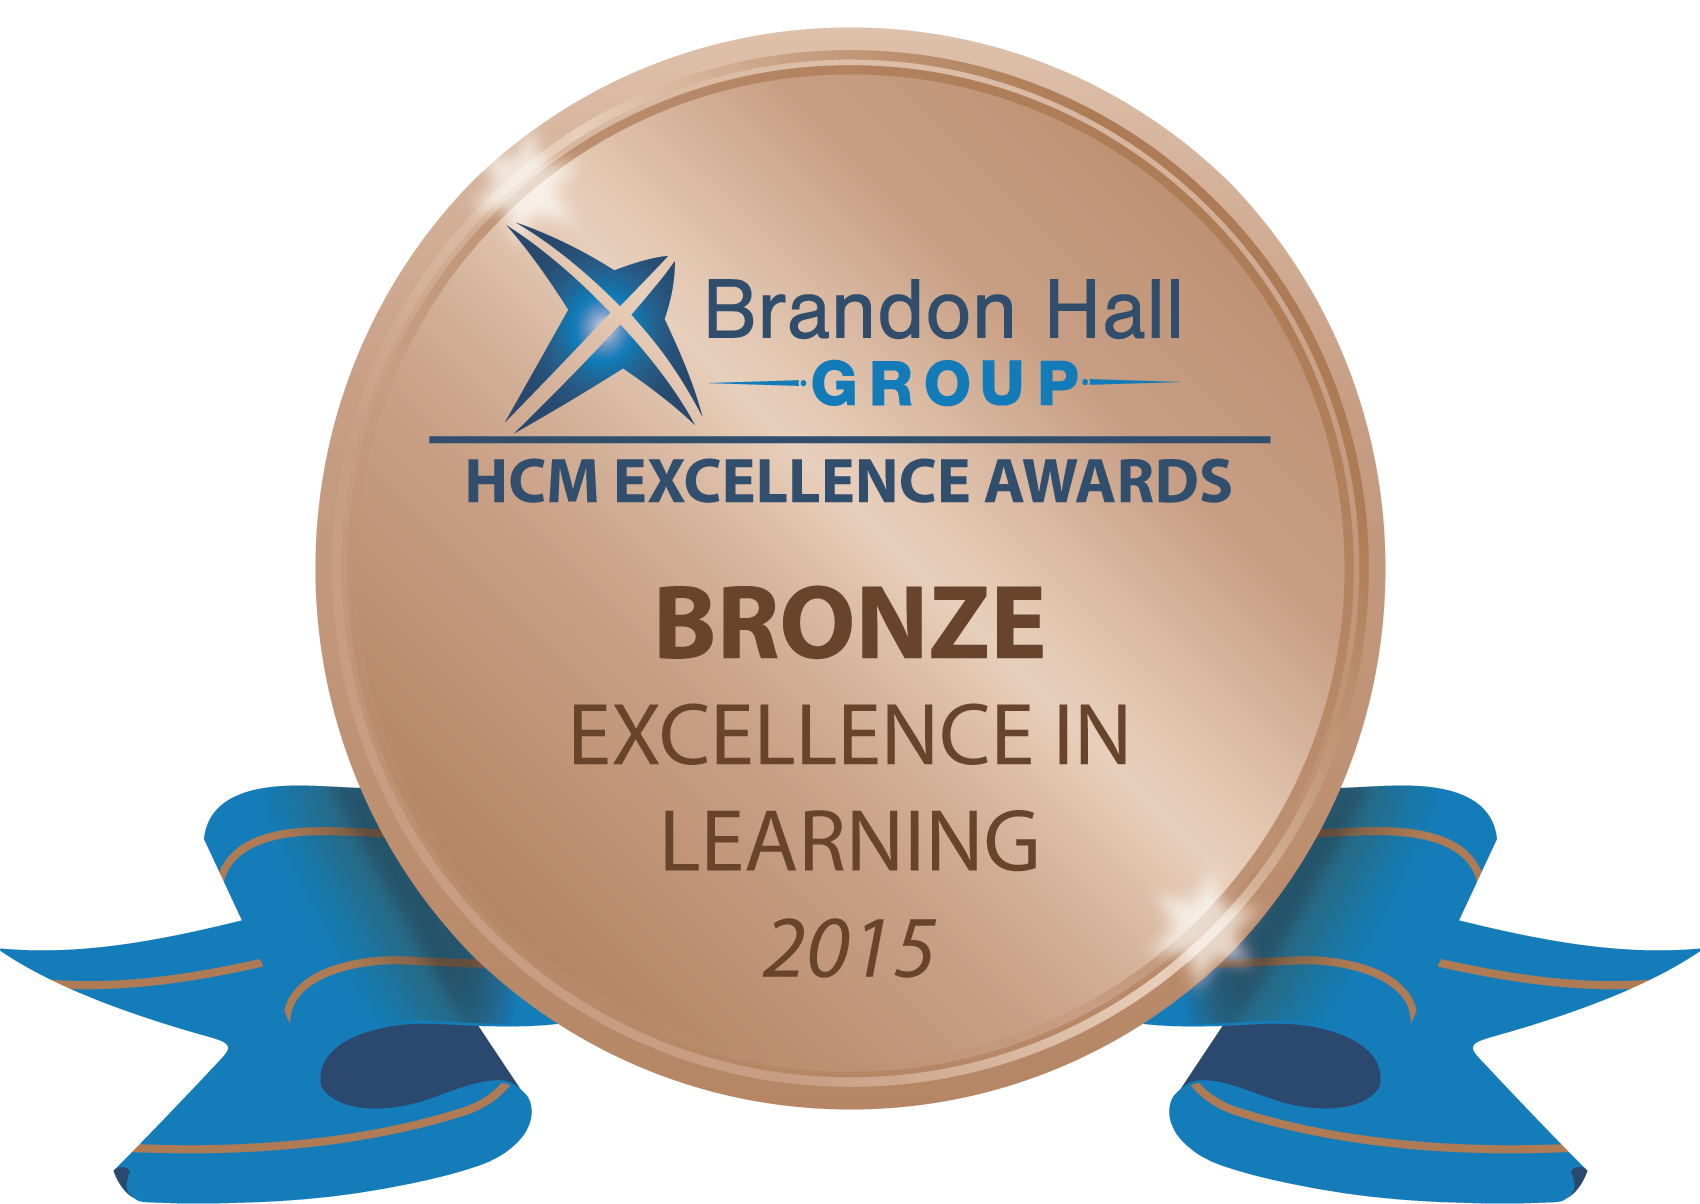 Bronze Learning Award